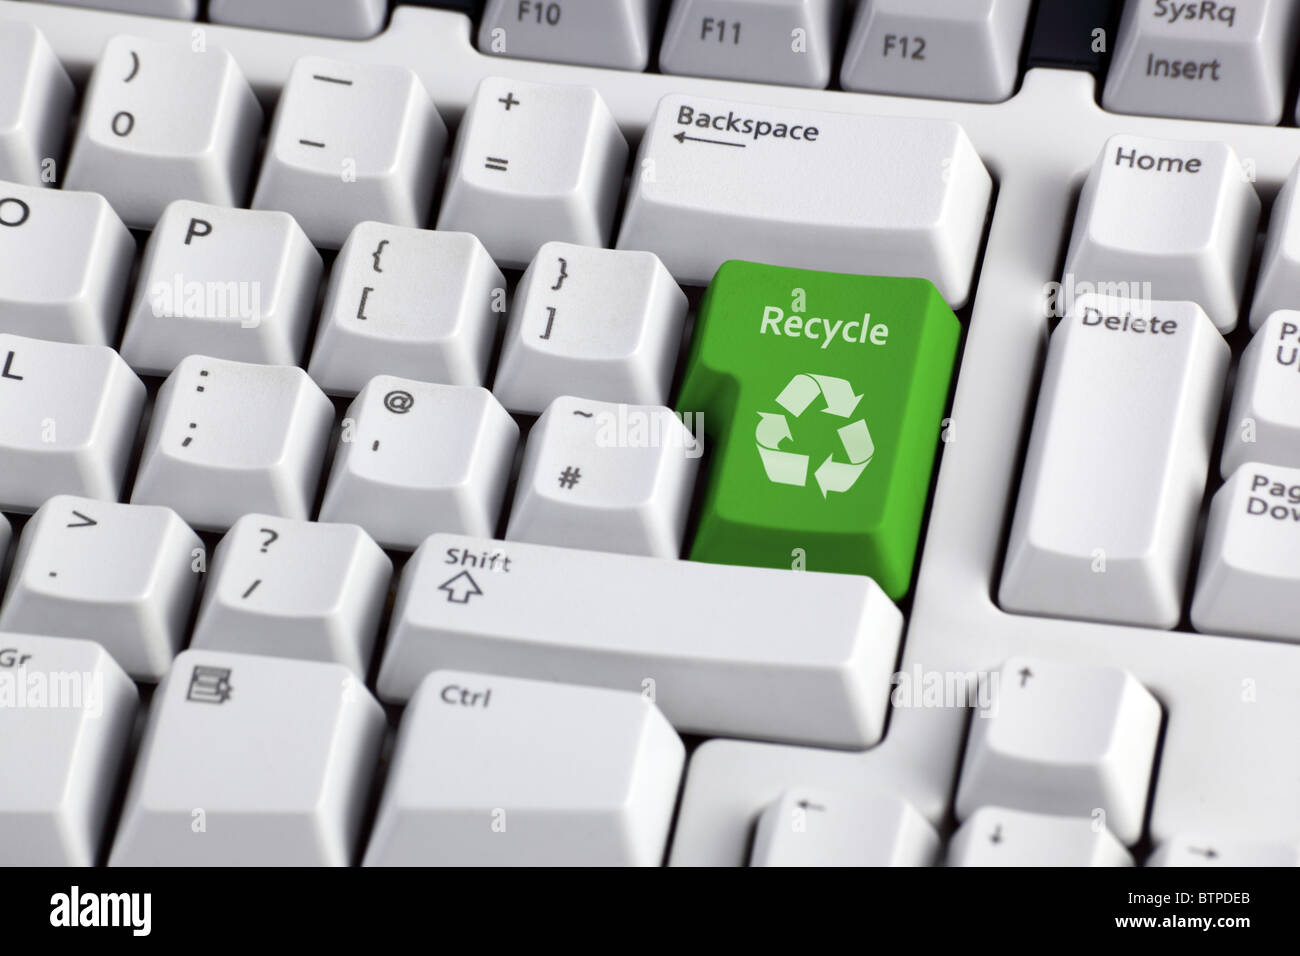 Symbole de recyclage sur clavier Photo Stock